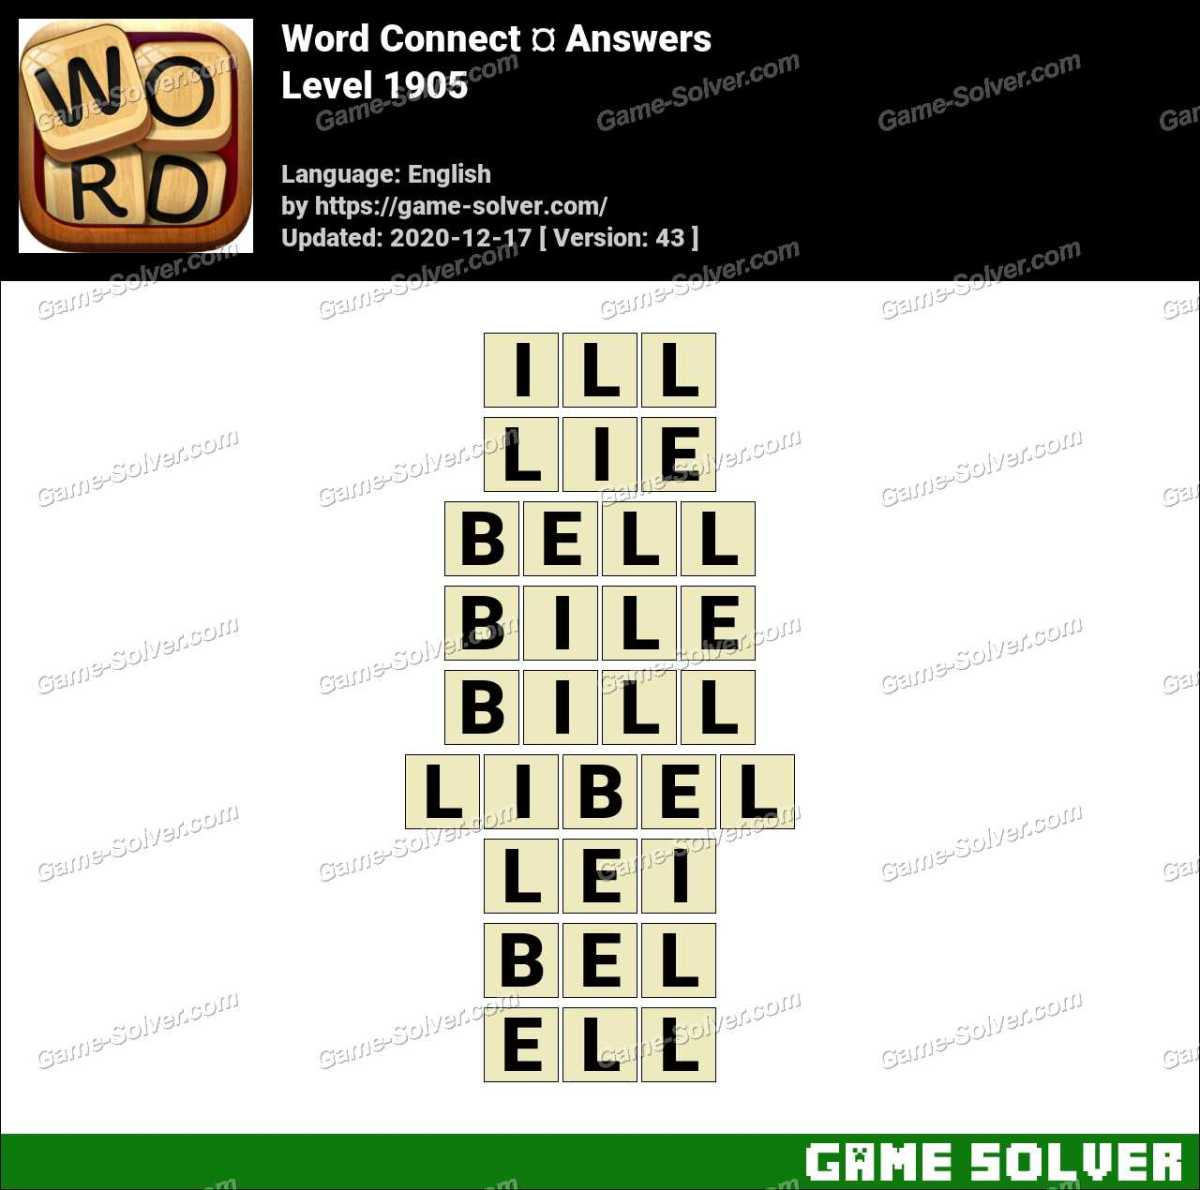 Word Connect Level 1905 Answers